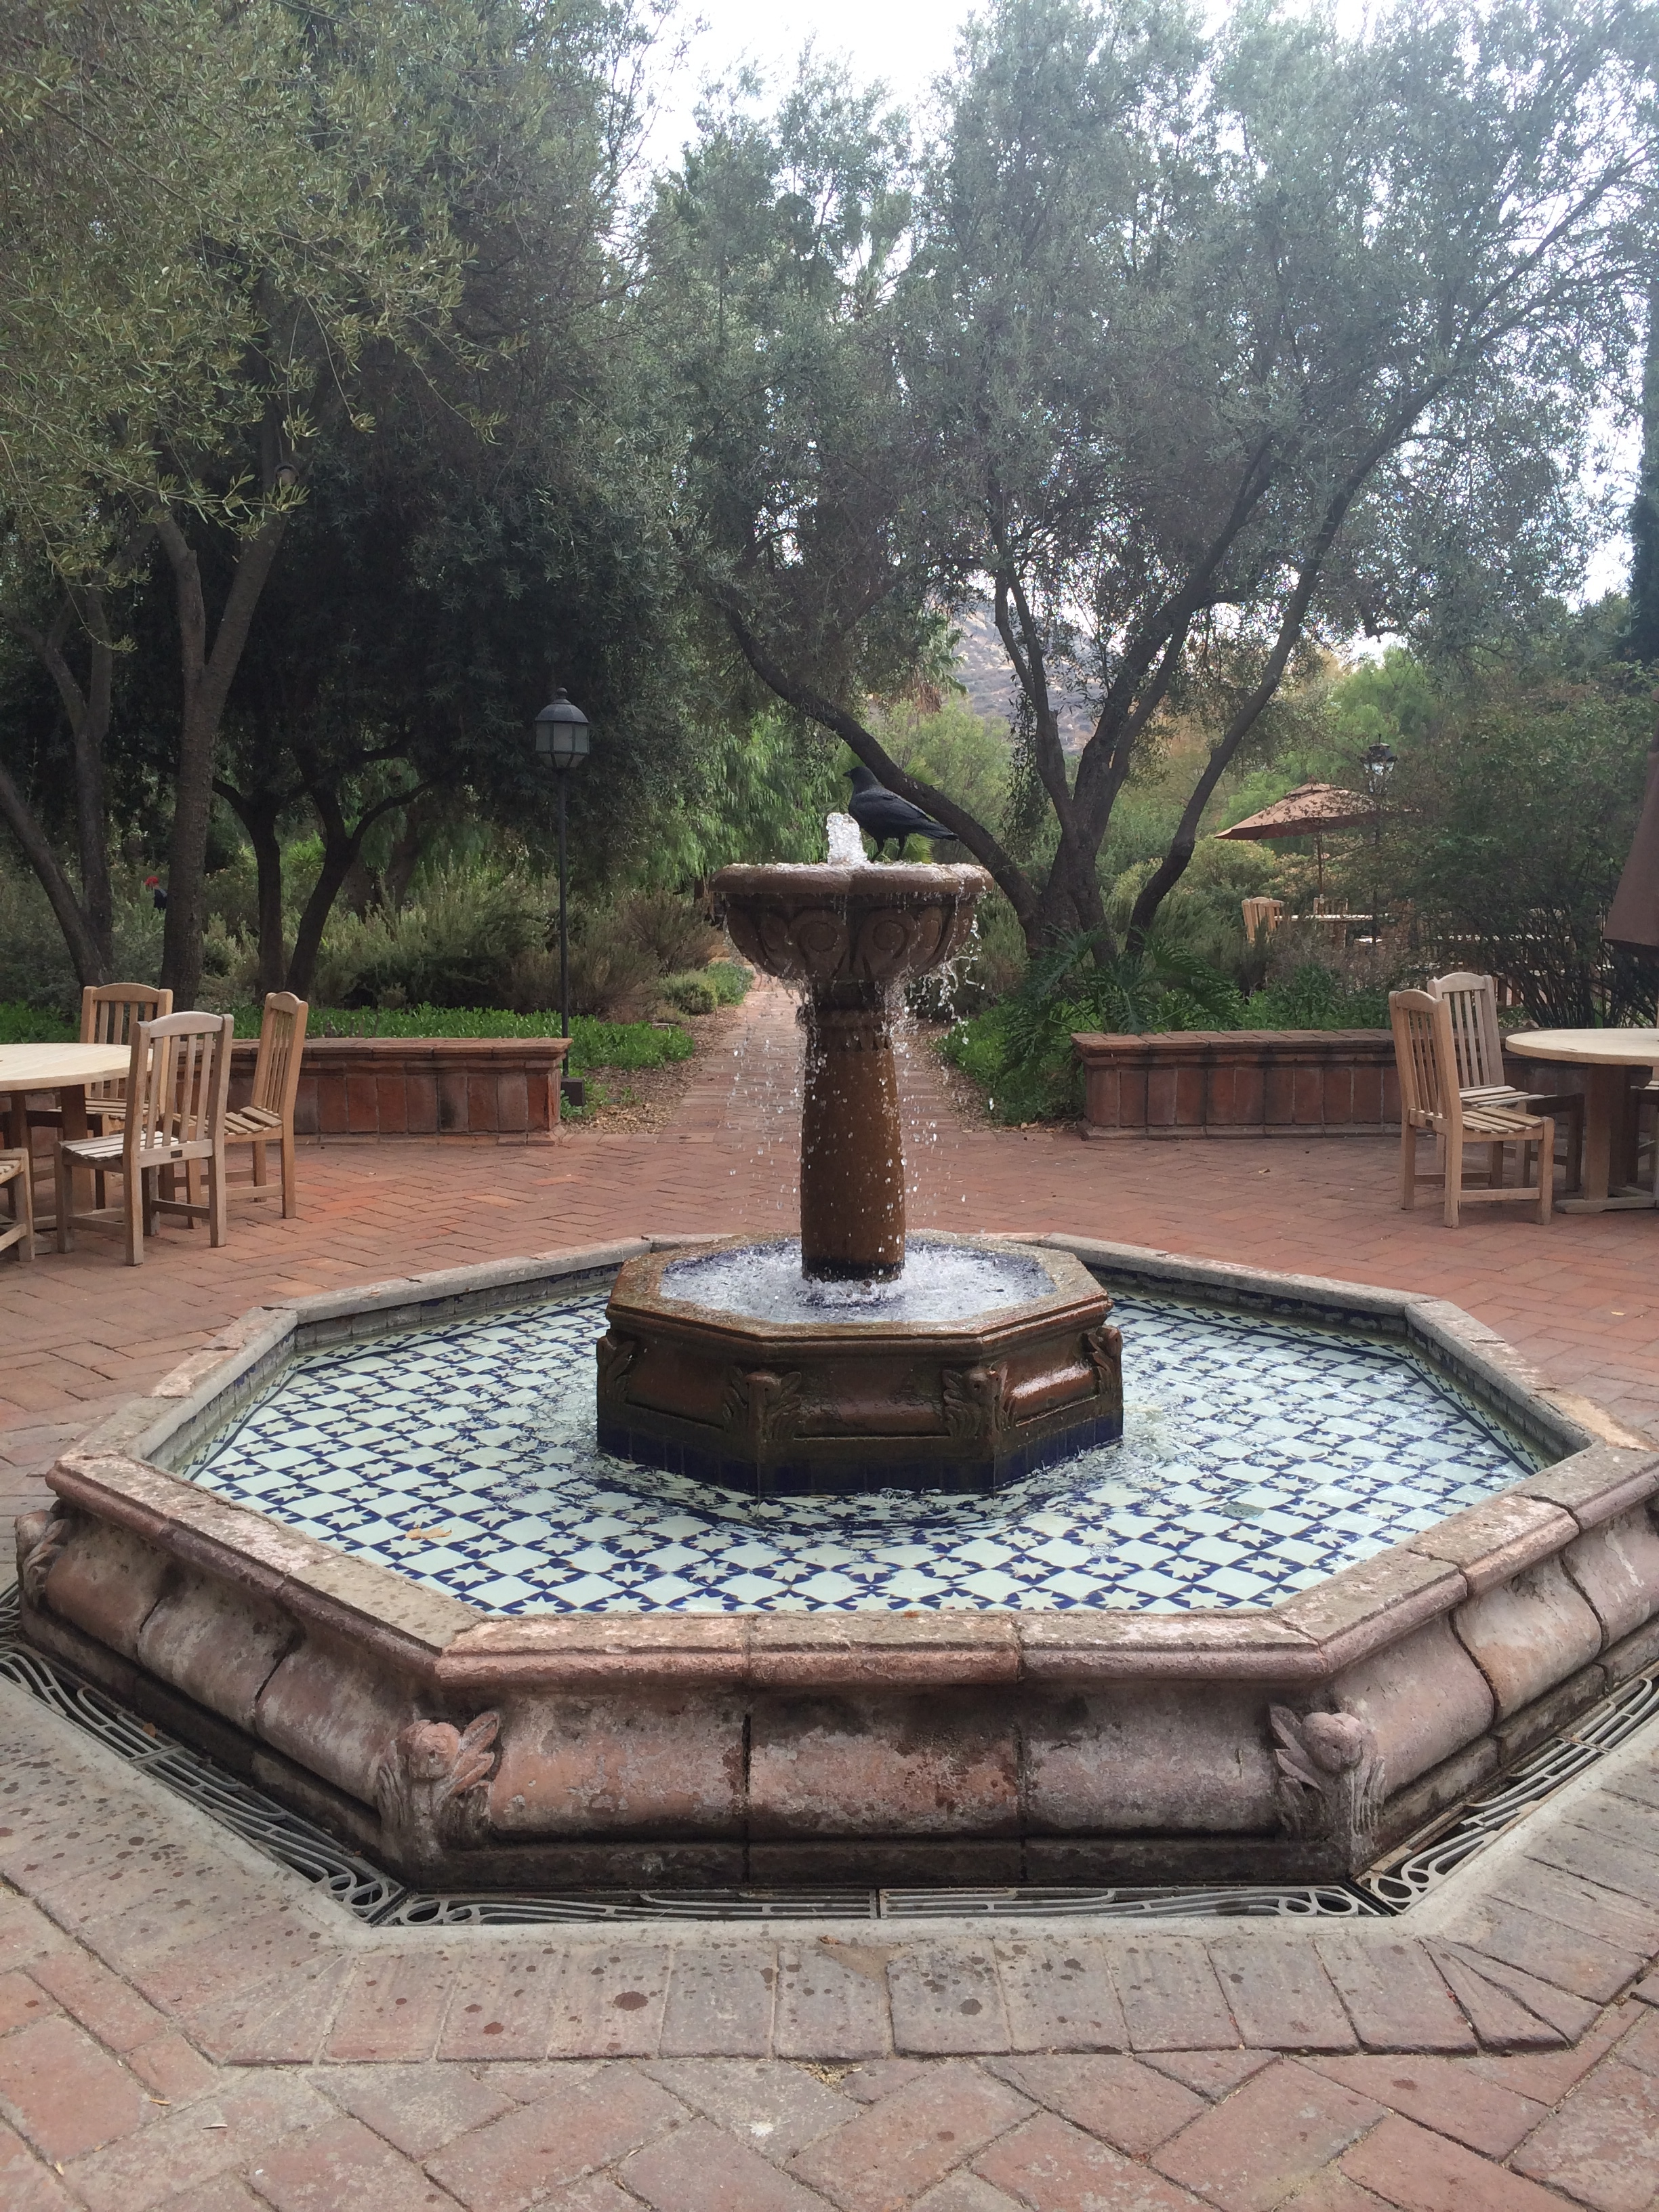 The fountain in the dining room patio